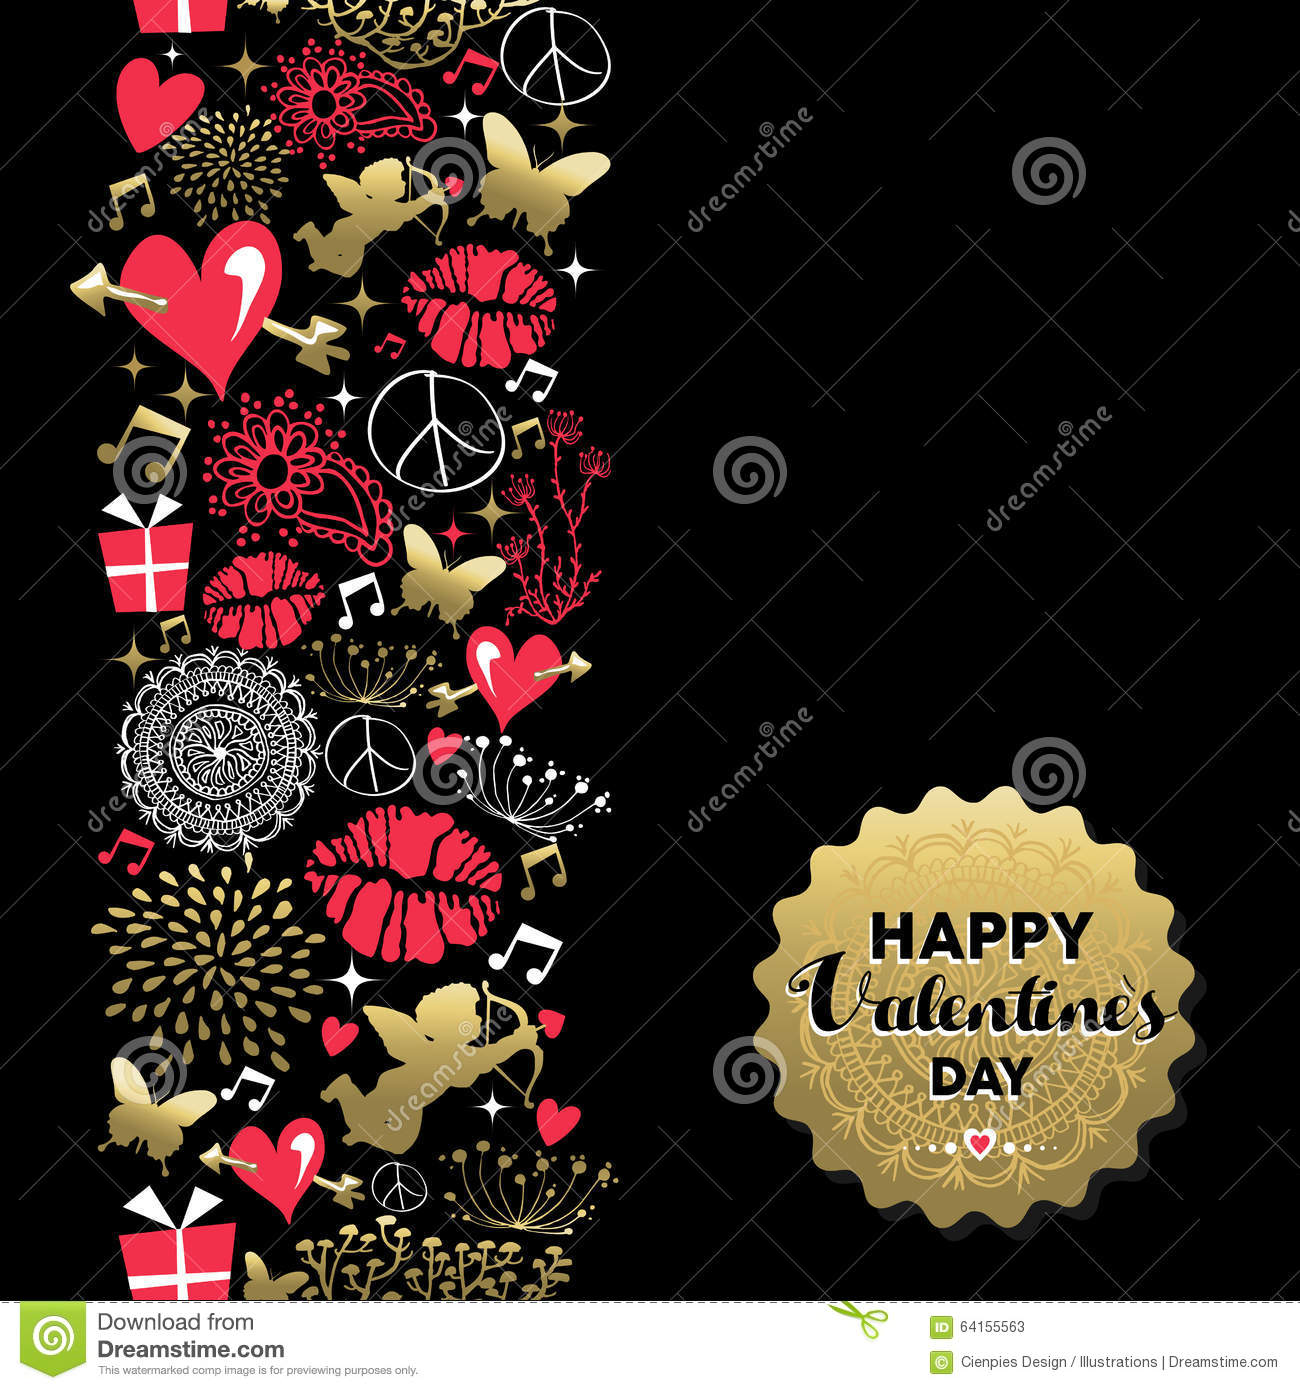 Valentines day greeting card pattern vintage icon